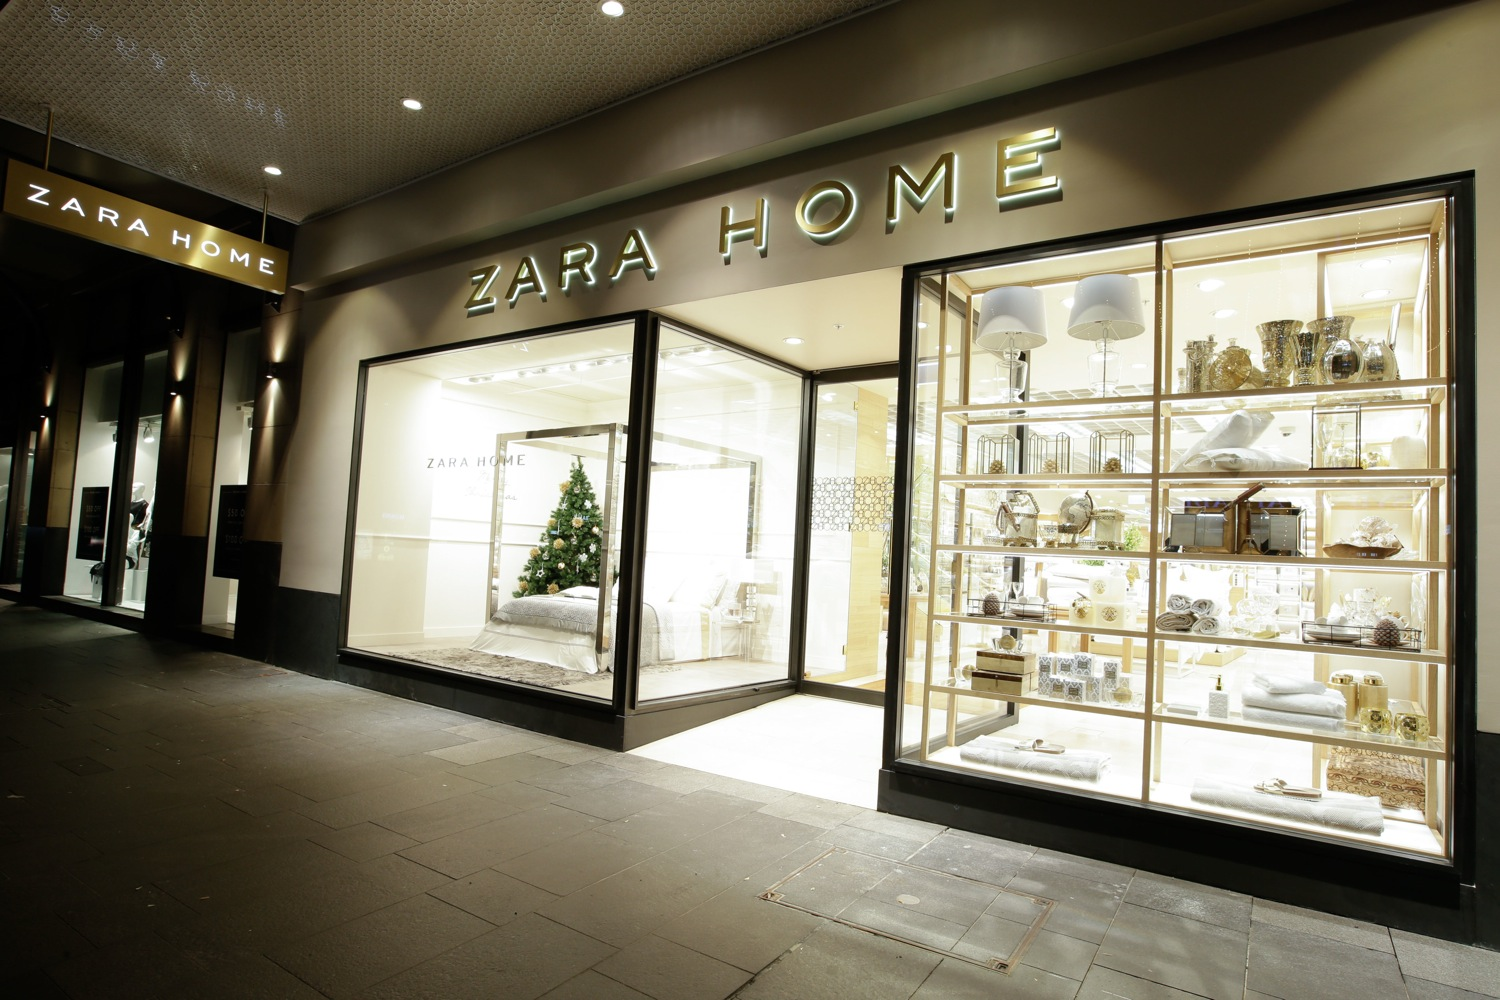 Zara Home Pitt St Mall 1 IMAGE LUCAS DAWSON Avon Ereps: Beware Of On Line Frauds